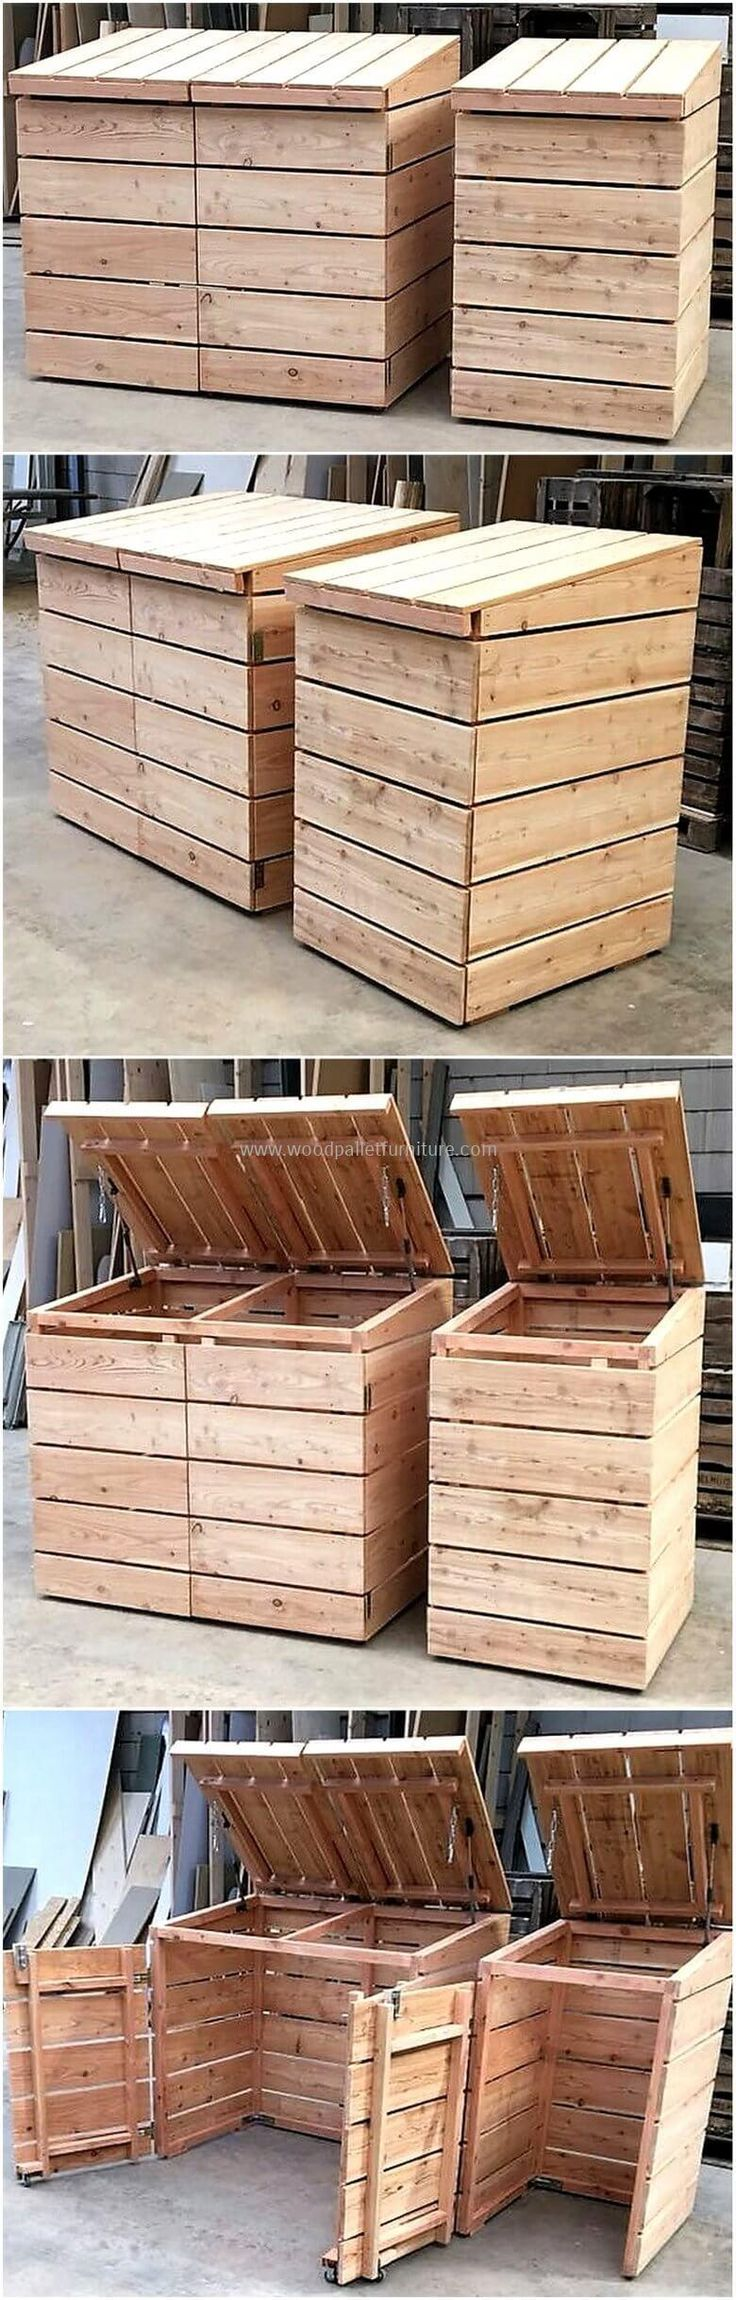 These wood pallets dumpsters are created with recycled wood pallets. This creation is so amazing in appearance that seems eye-catching for the first sight. This useless wood pallets project is so wonderful storage plan that it is not only good to fulfill home storage needs but also best to use in shopping stores to meet storage requirements.